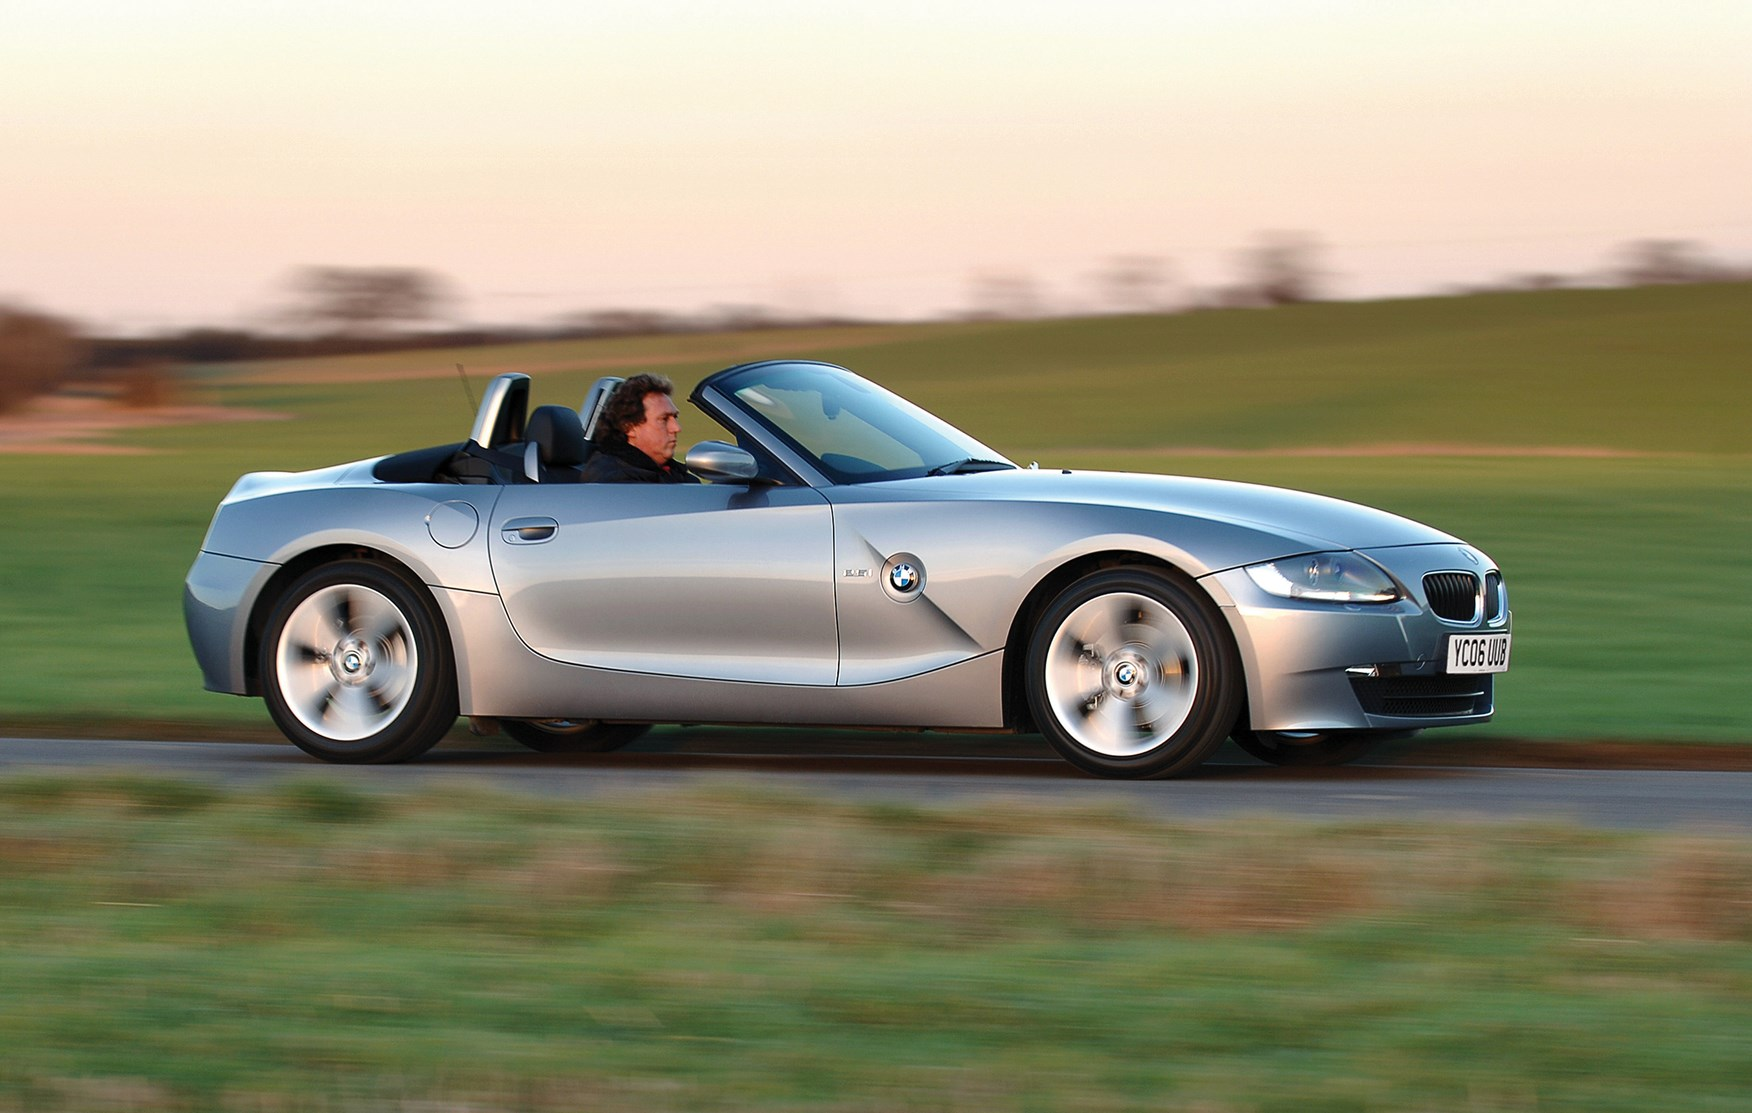 Bmw Z4 28i Review Bmw Z4 28i Review 2012 Bmw Z4 S Drive 28i 2 0t Start Up Bmw Convertible Bmw